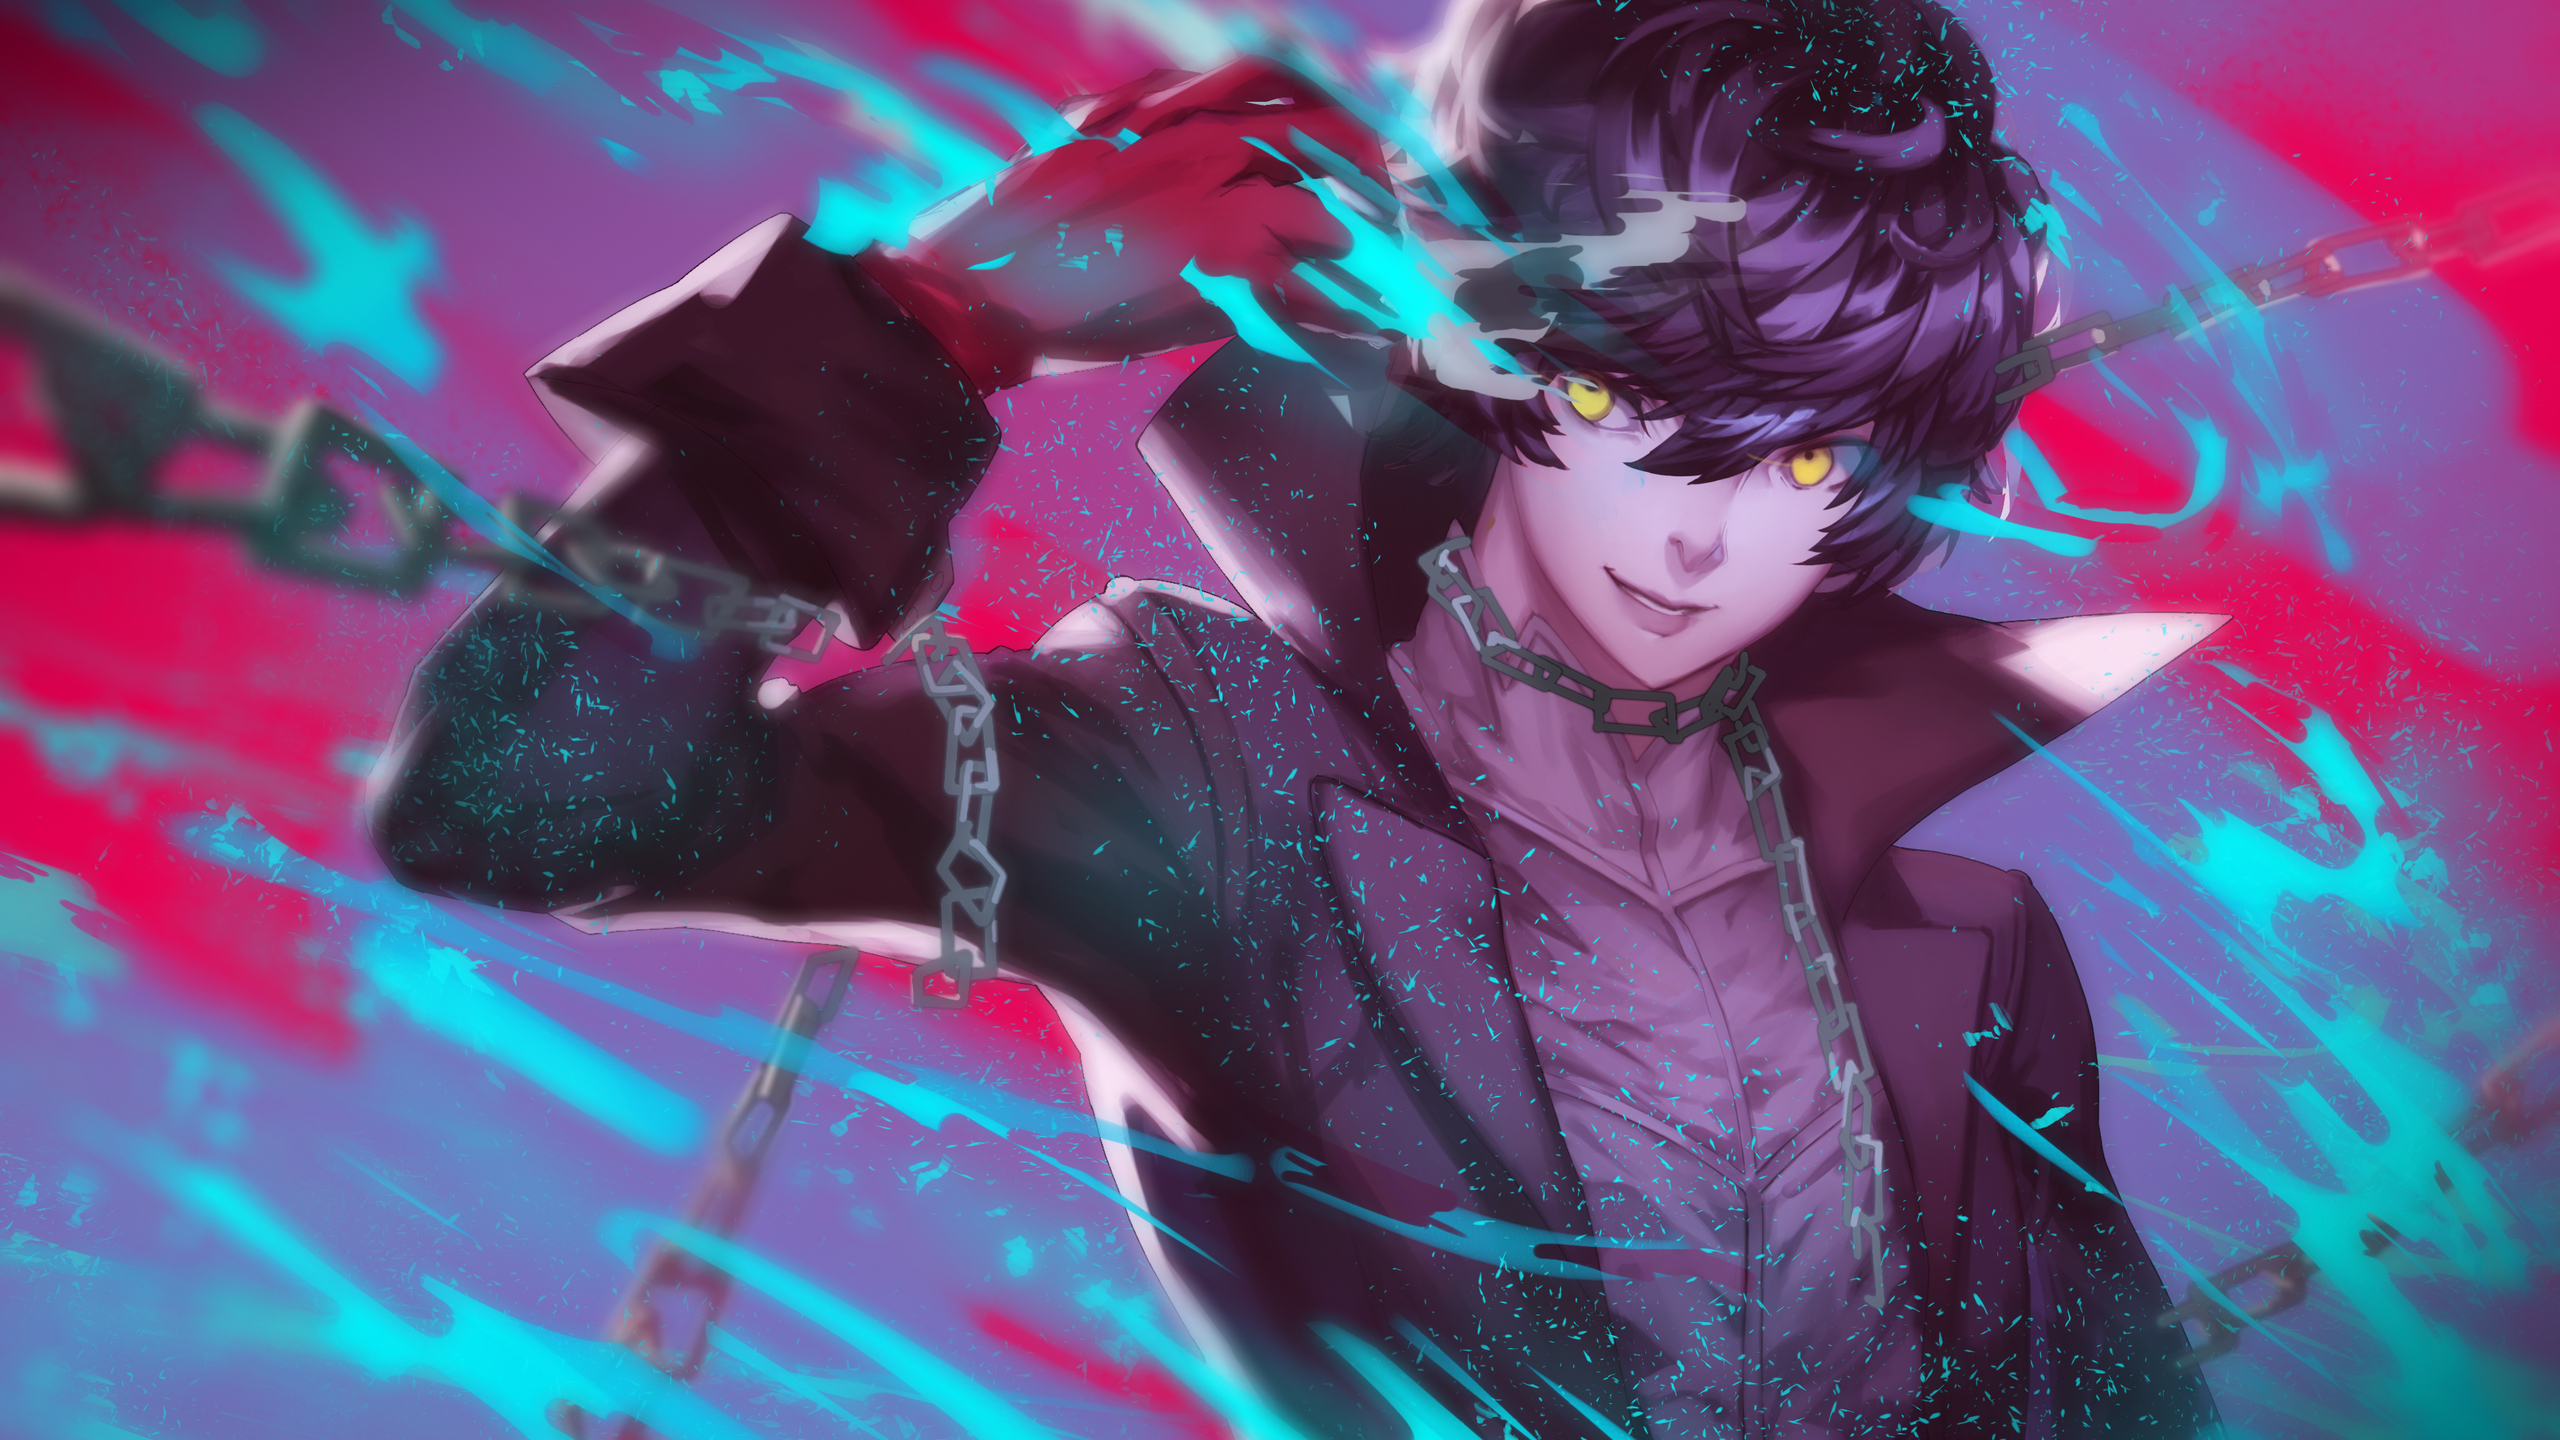 2560x1440 Persona 5 Amamiya Ren 1440p Resolution Hd 4k Wallpapers Images Backgrounds Photos And Pictures